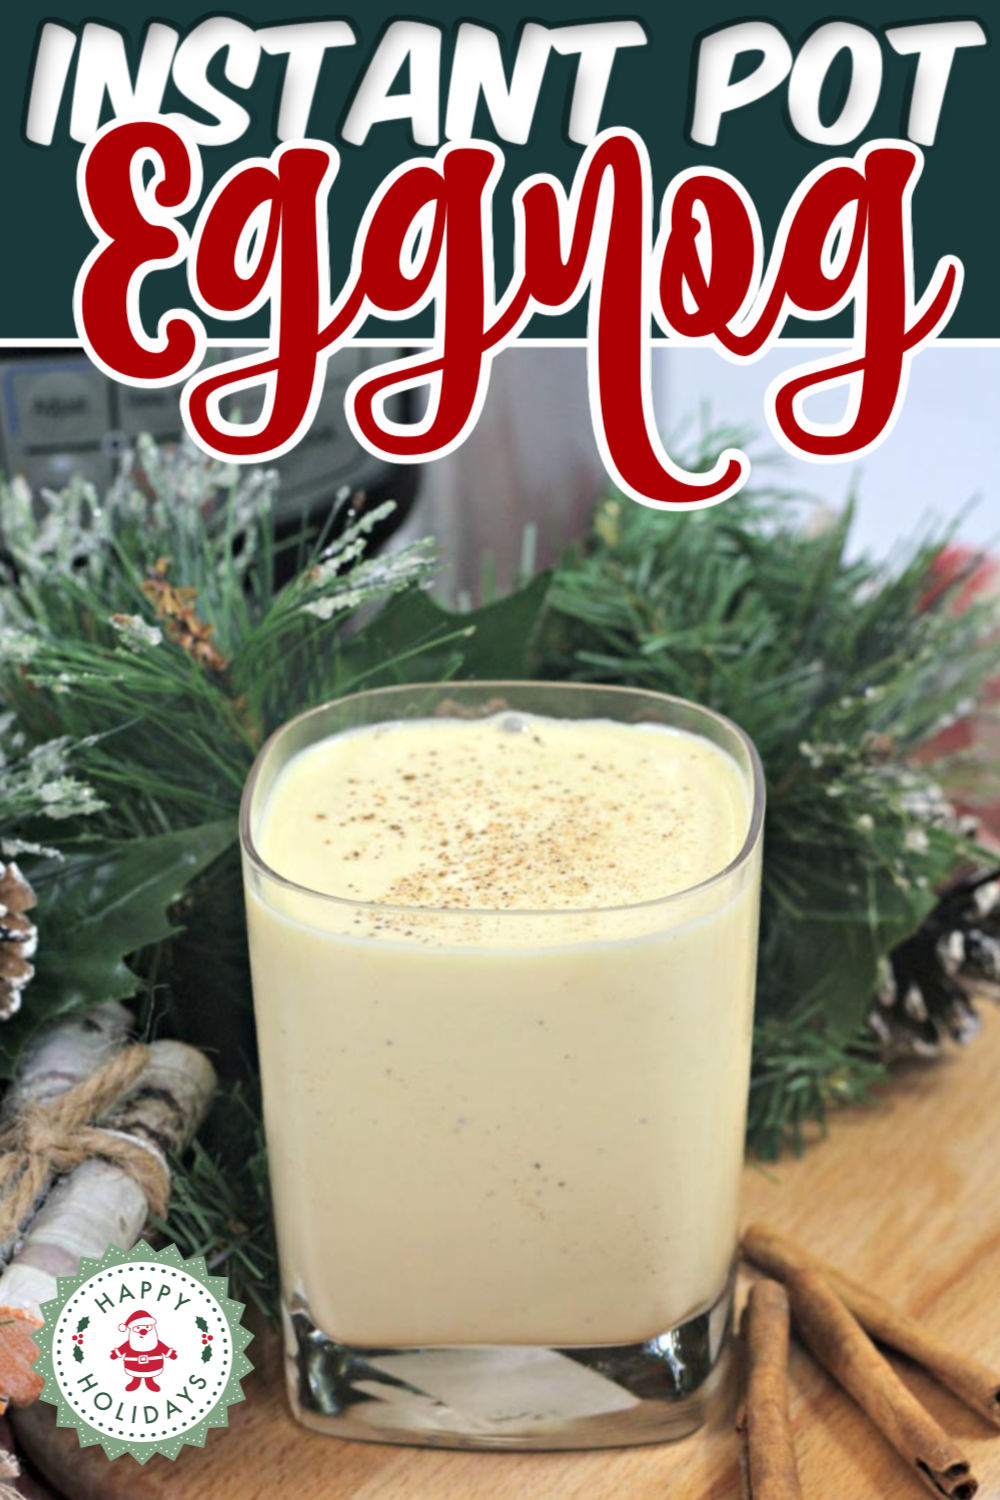 Instant Pot Eggnog is the perfect holiday treat. Easy to make and serve, this delicious Christmas eggnog will certainly have you celebrating the yuletide season!